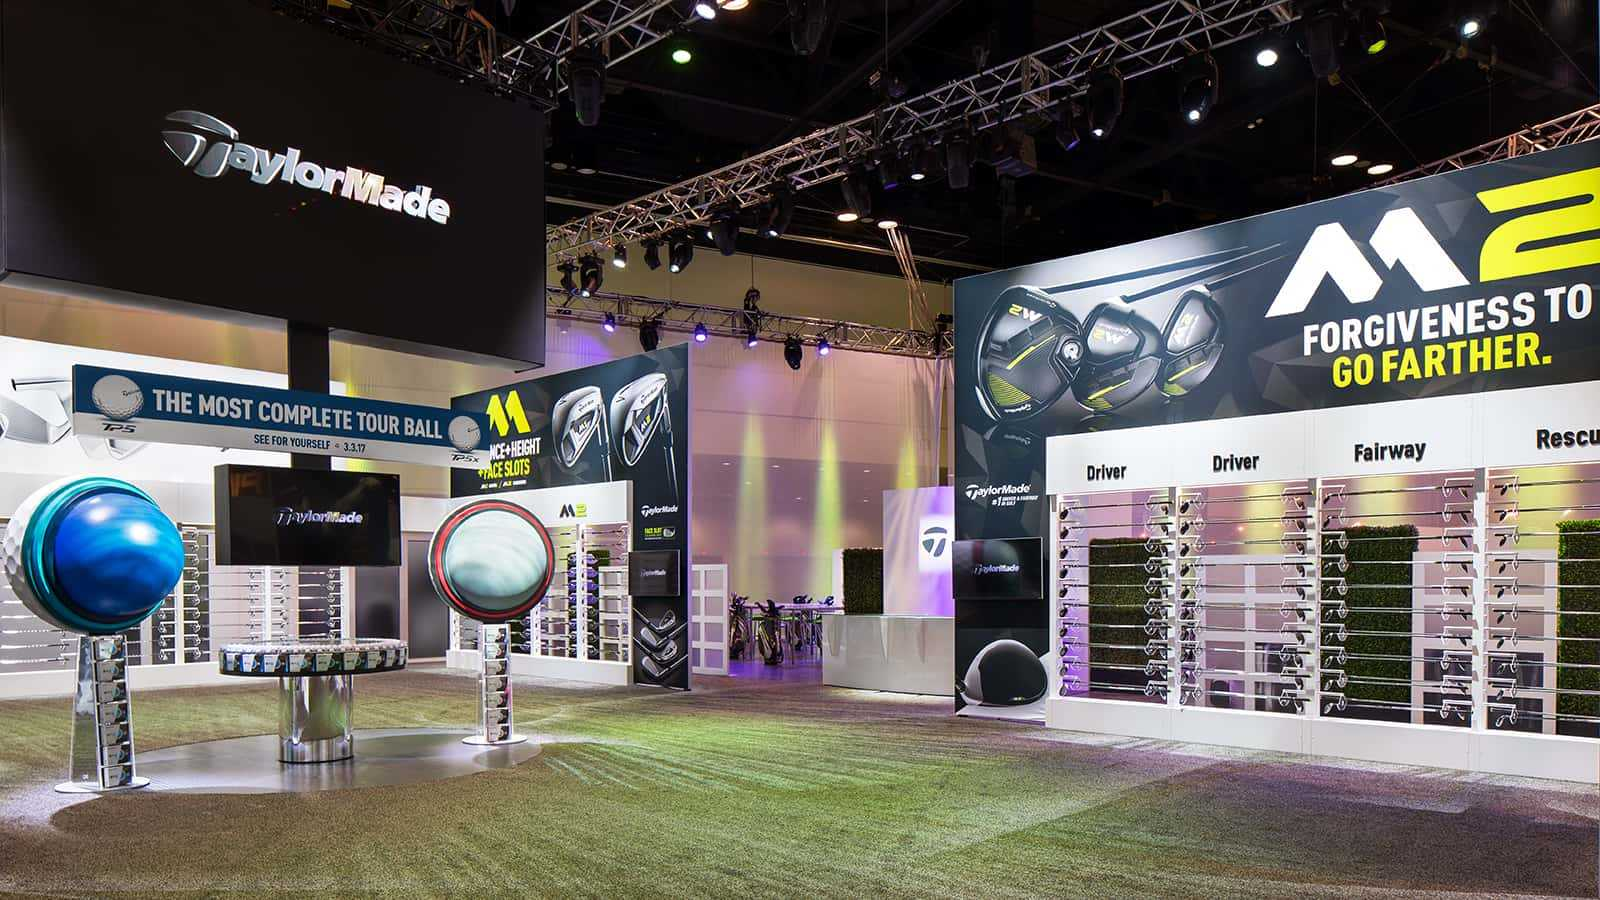 Club display zone at the TaylorMade PGA Merchandise Show 2017 experience.